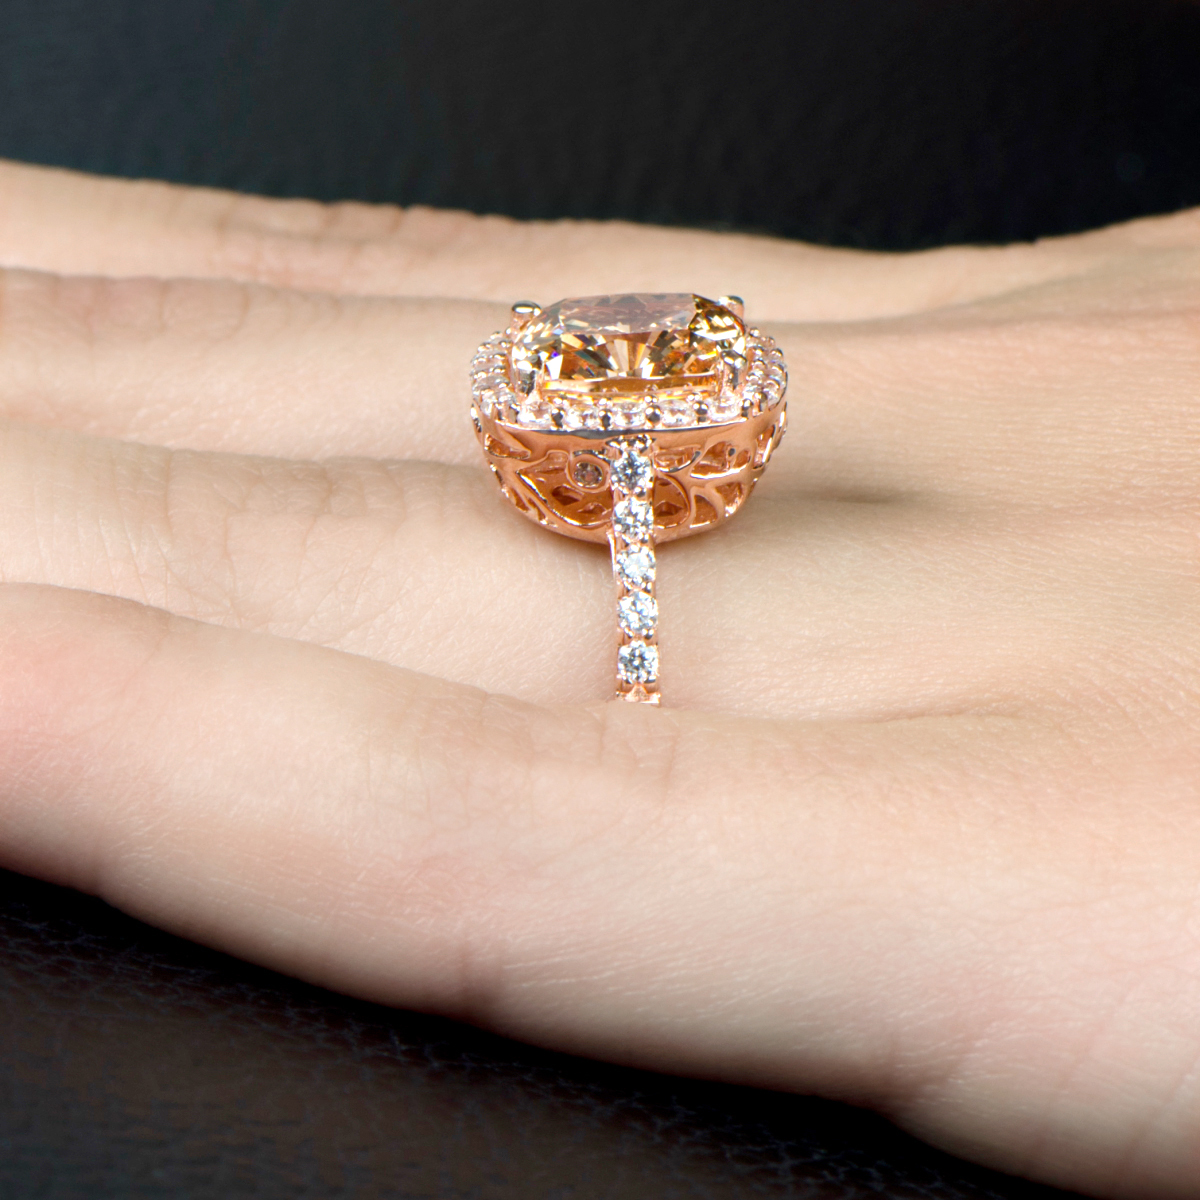 Sheera s 3 87ct Rose Goldtone and Peach CZ Cushion Cut Halo Engagement Ring